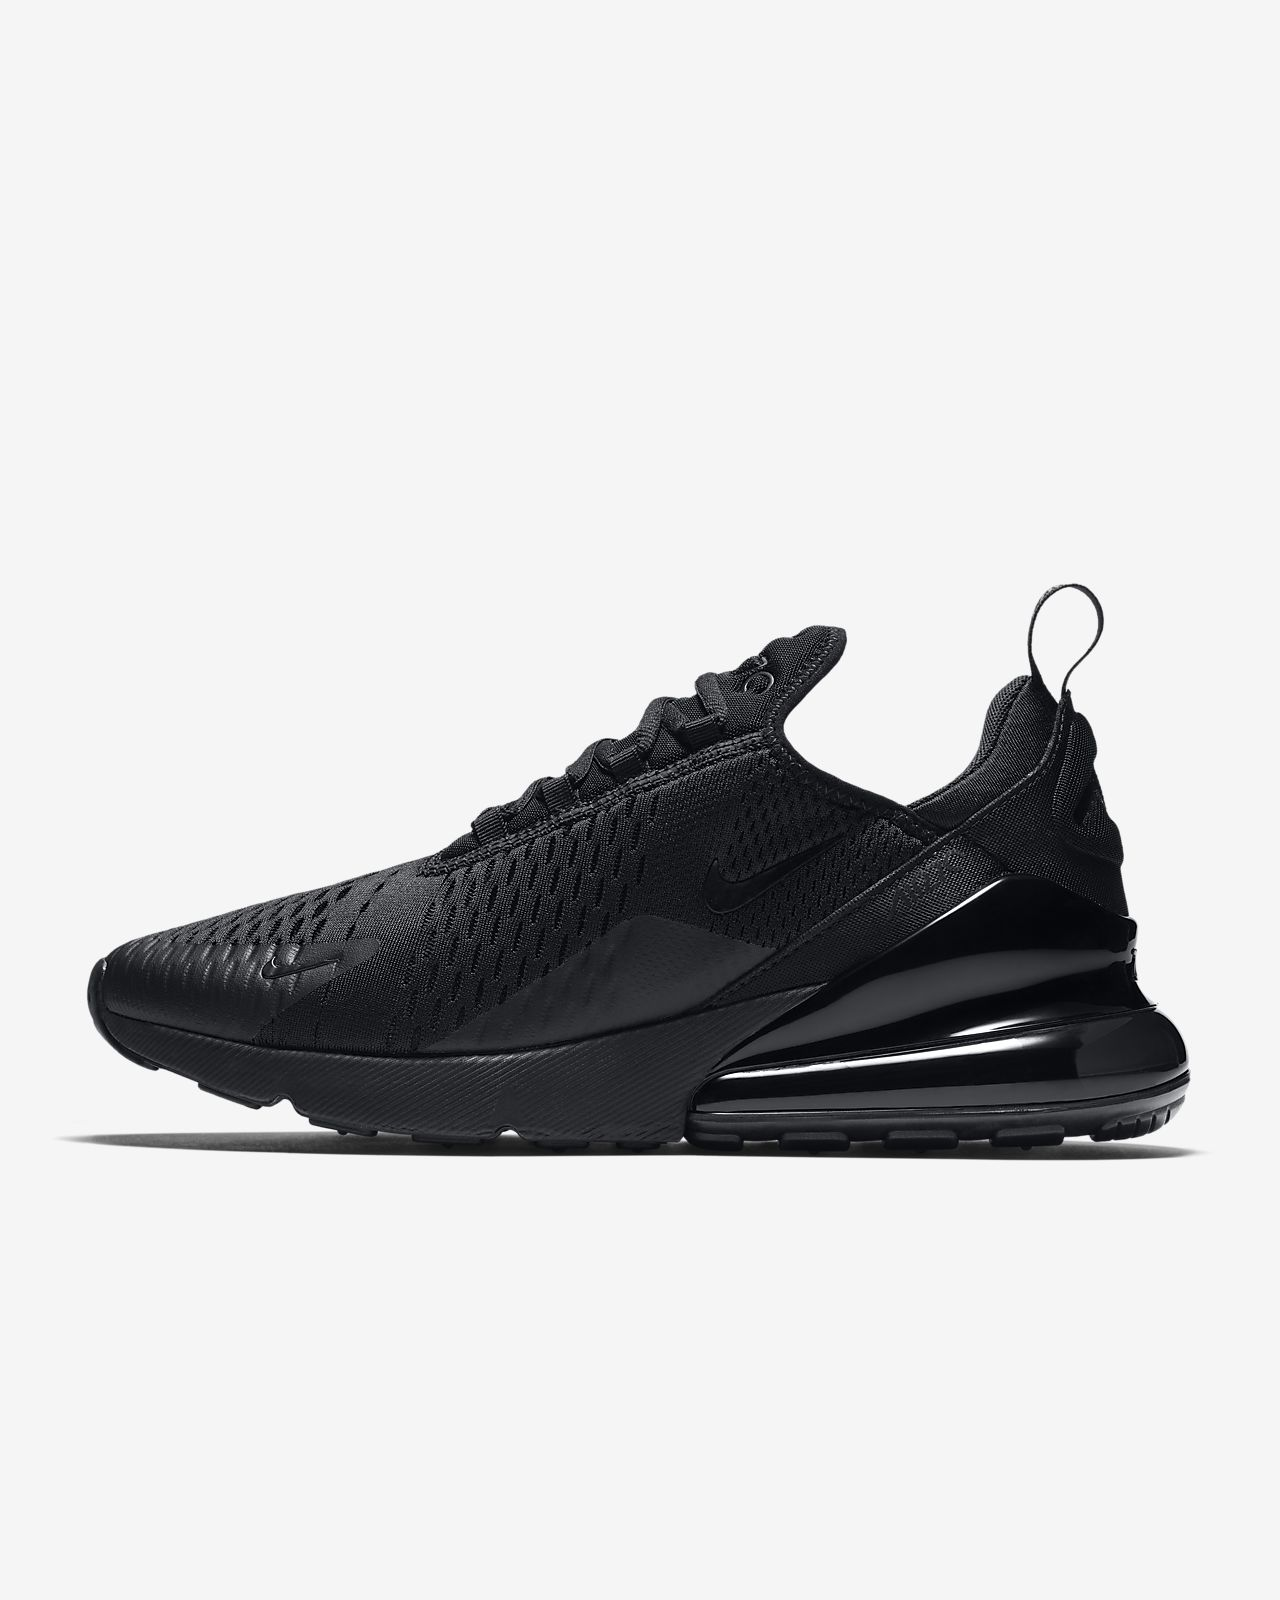 809d05ca0637 Nike Air Max 270 Men s Shoe. Nike.com AU